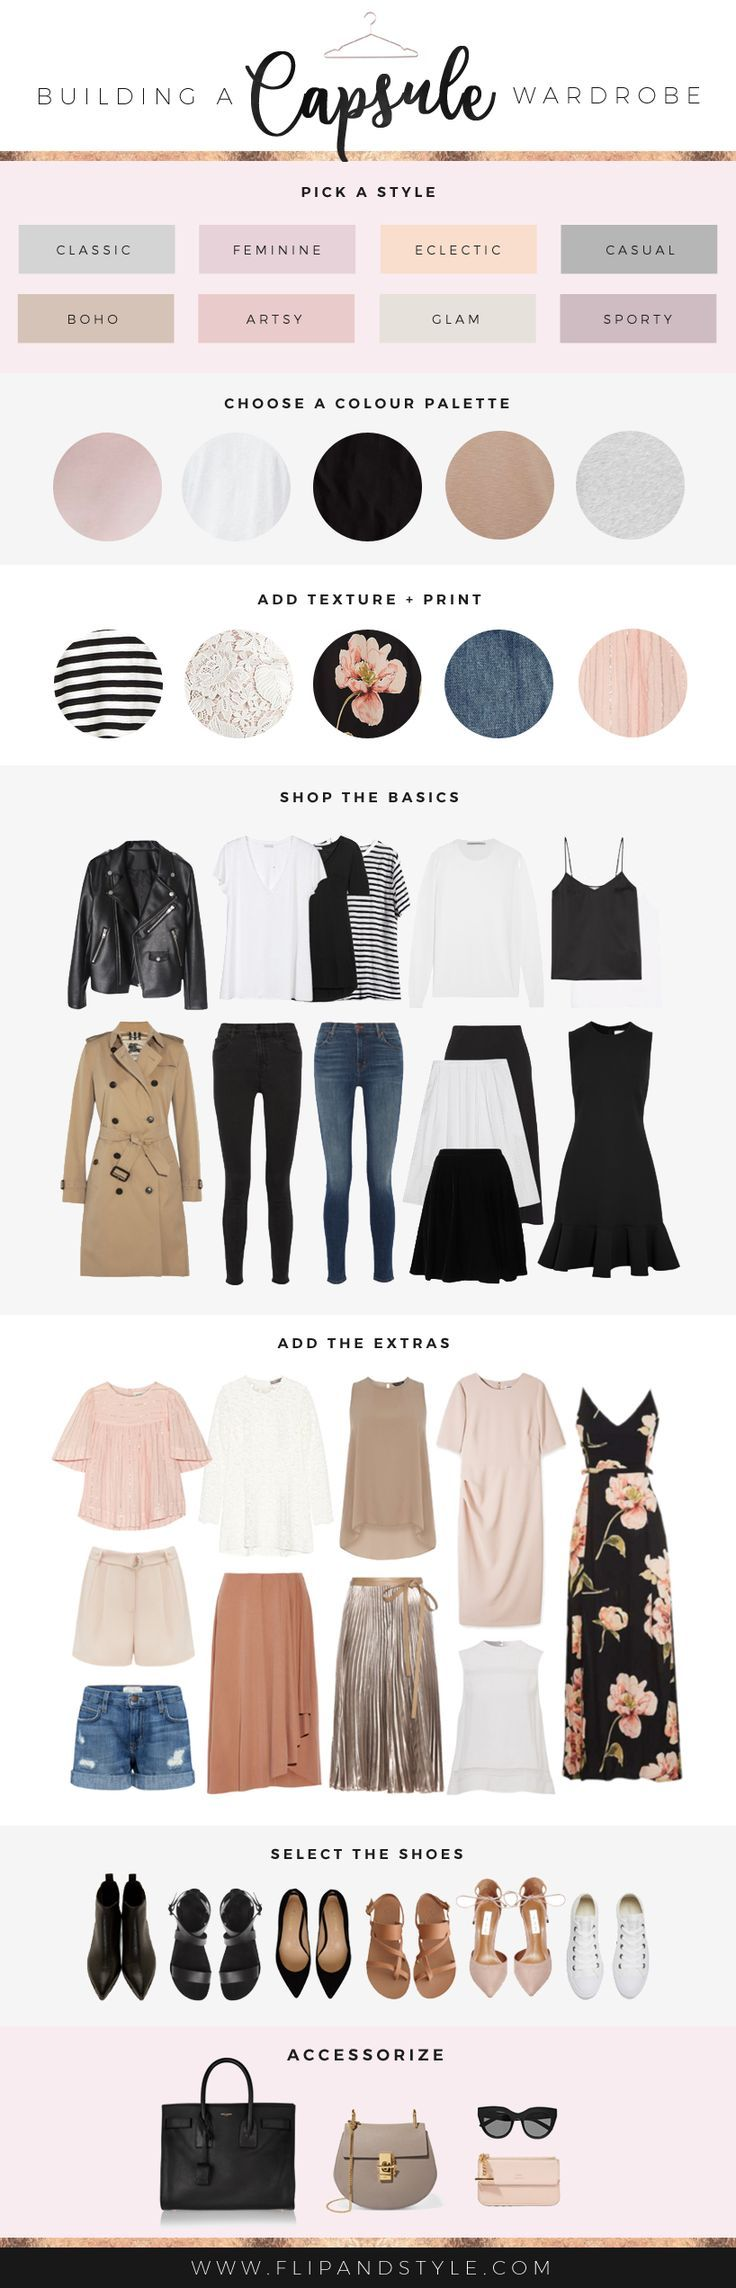 How To Build A Capsule Wardrobe Style Essentials